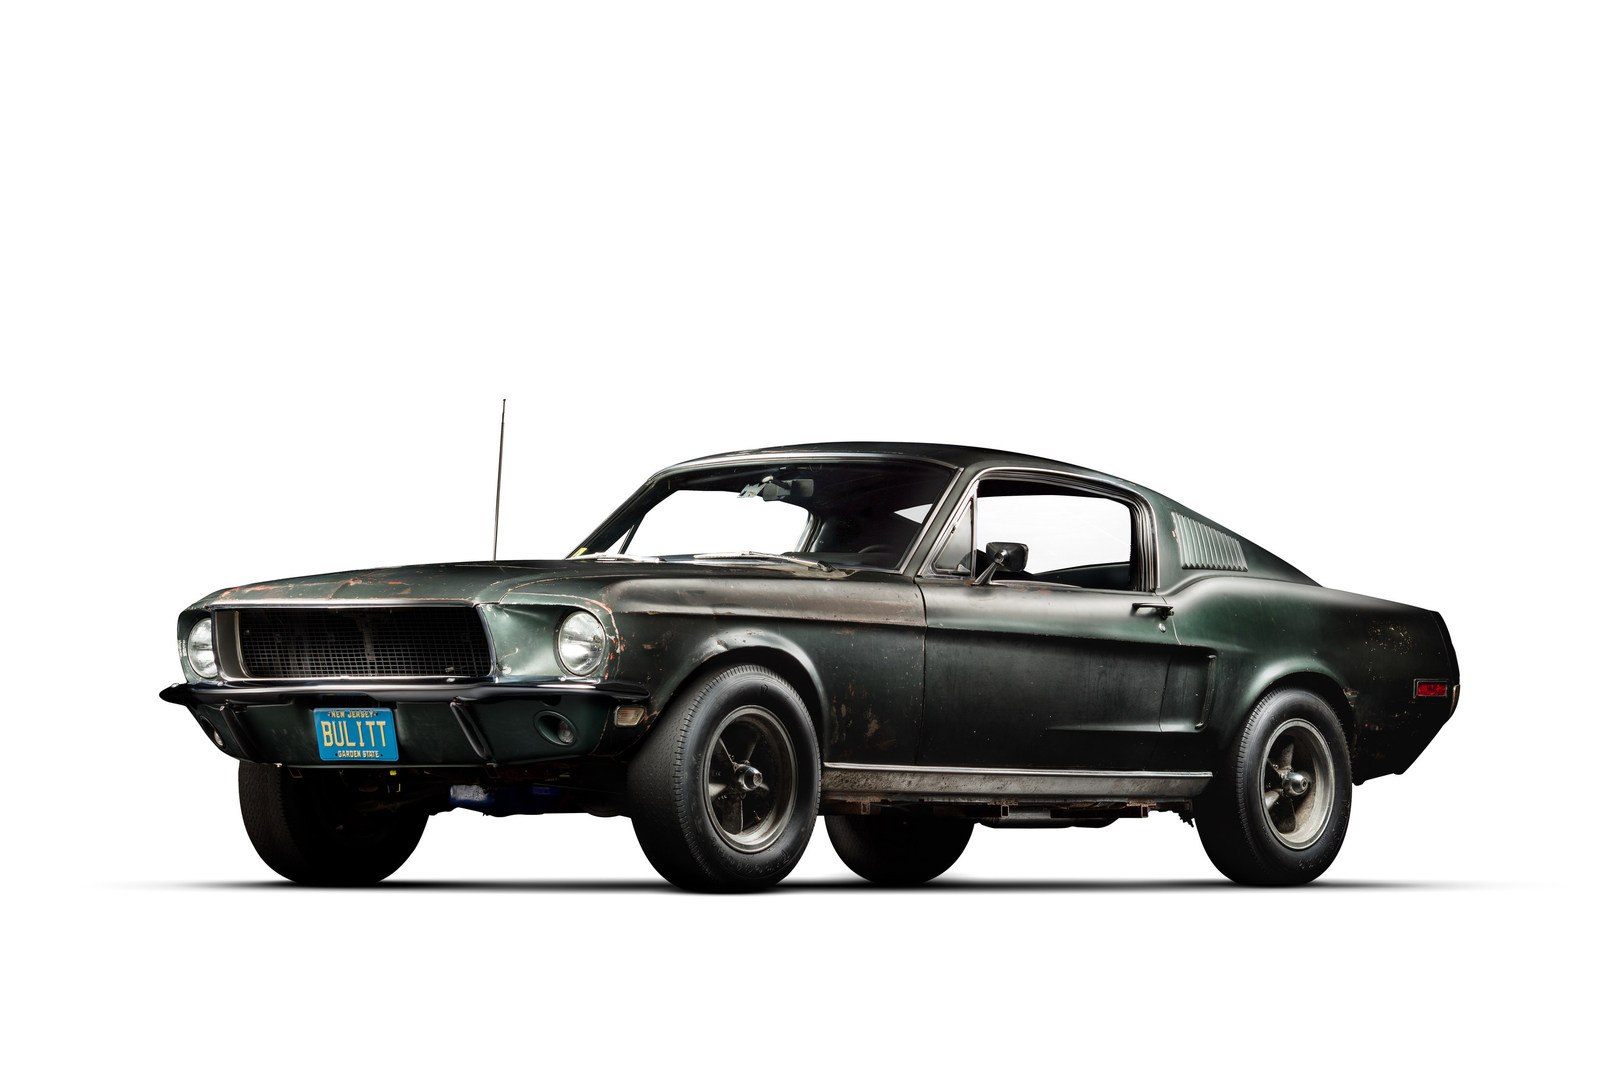 1968 Ford Mustang Fastback Bullitt - Historic Vehicle Association